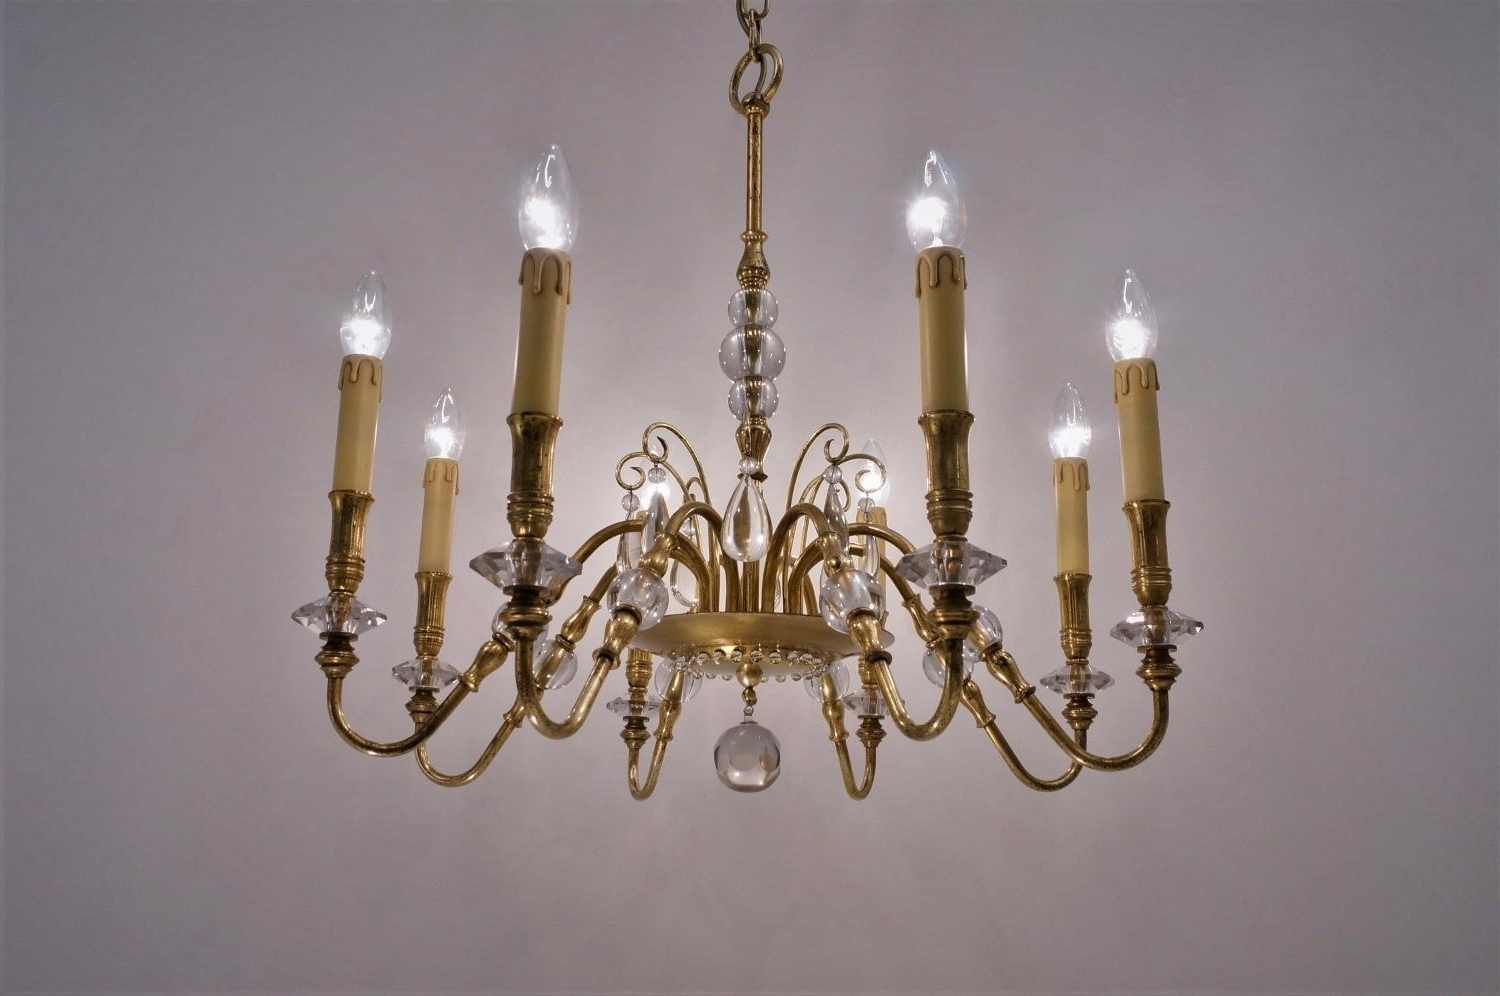 Most Recently Released French Chandelier, 1940S For Sale At Pamono With Regard To French Chandelier (View 14 of 20)